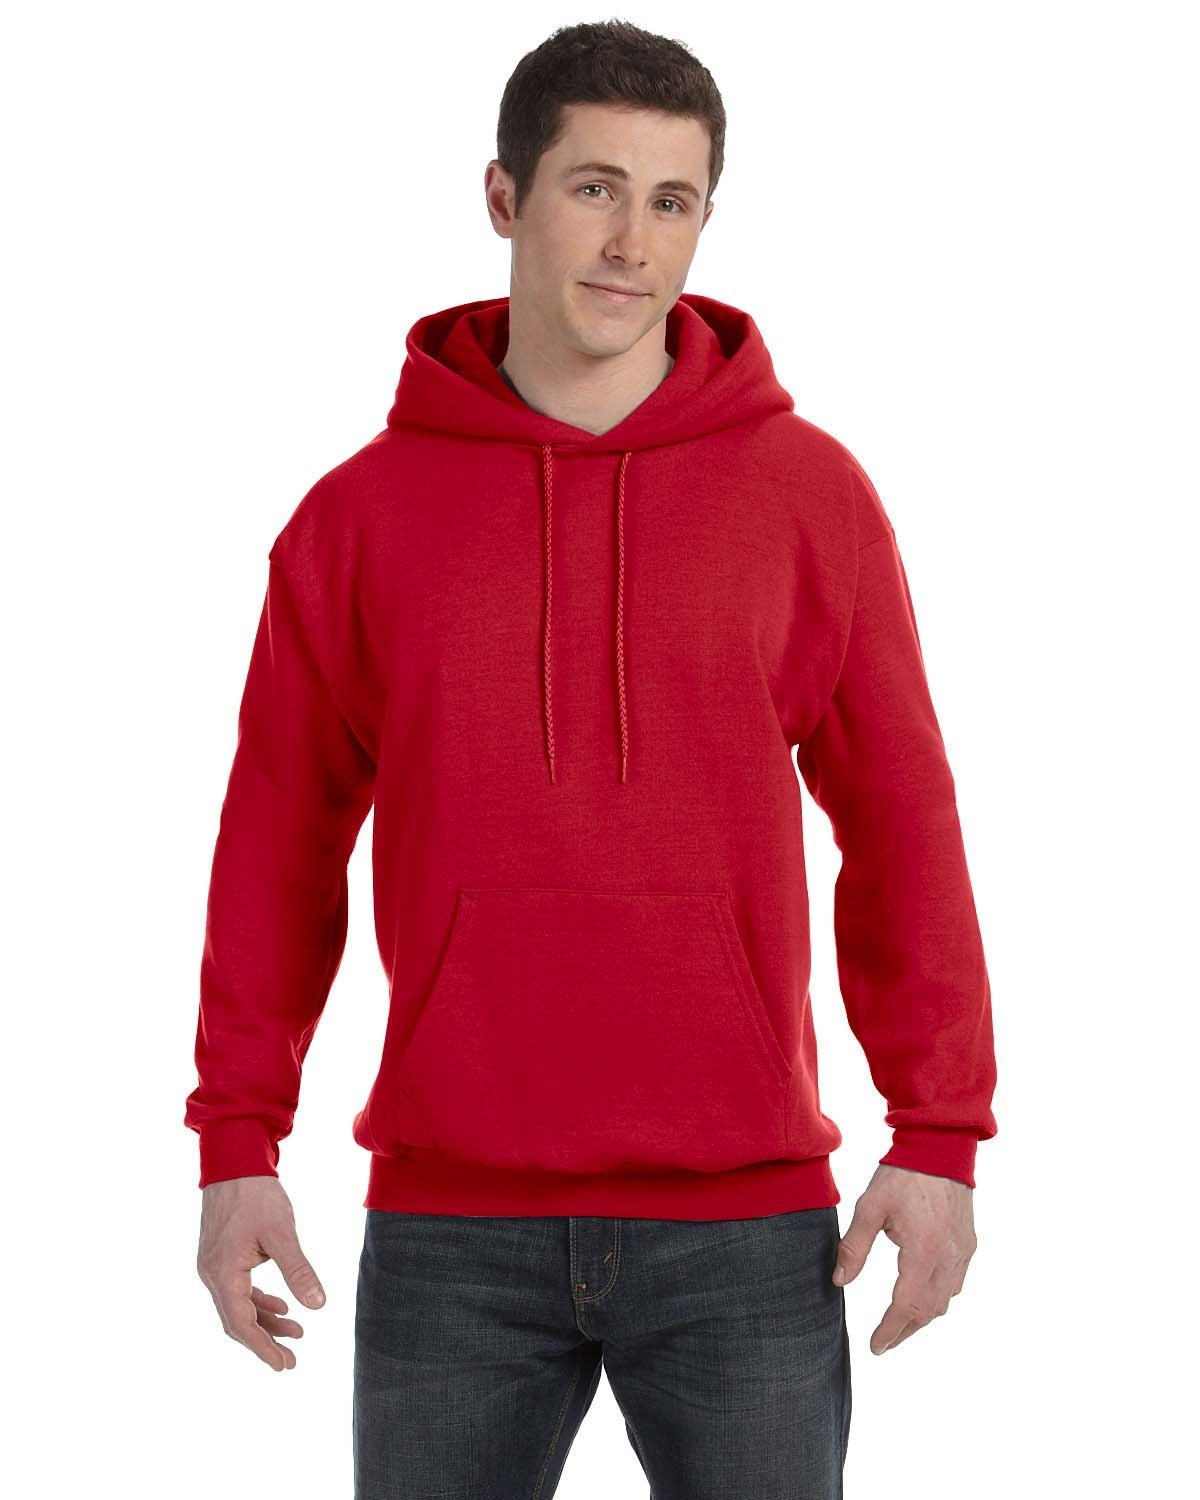 Hanes Unisex Ecosmart® 50/50 Pullover Hooded Sweatshirt DEEP RED